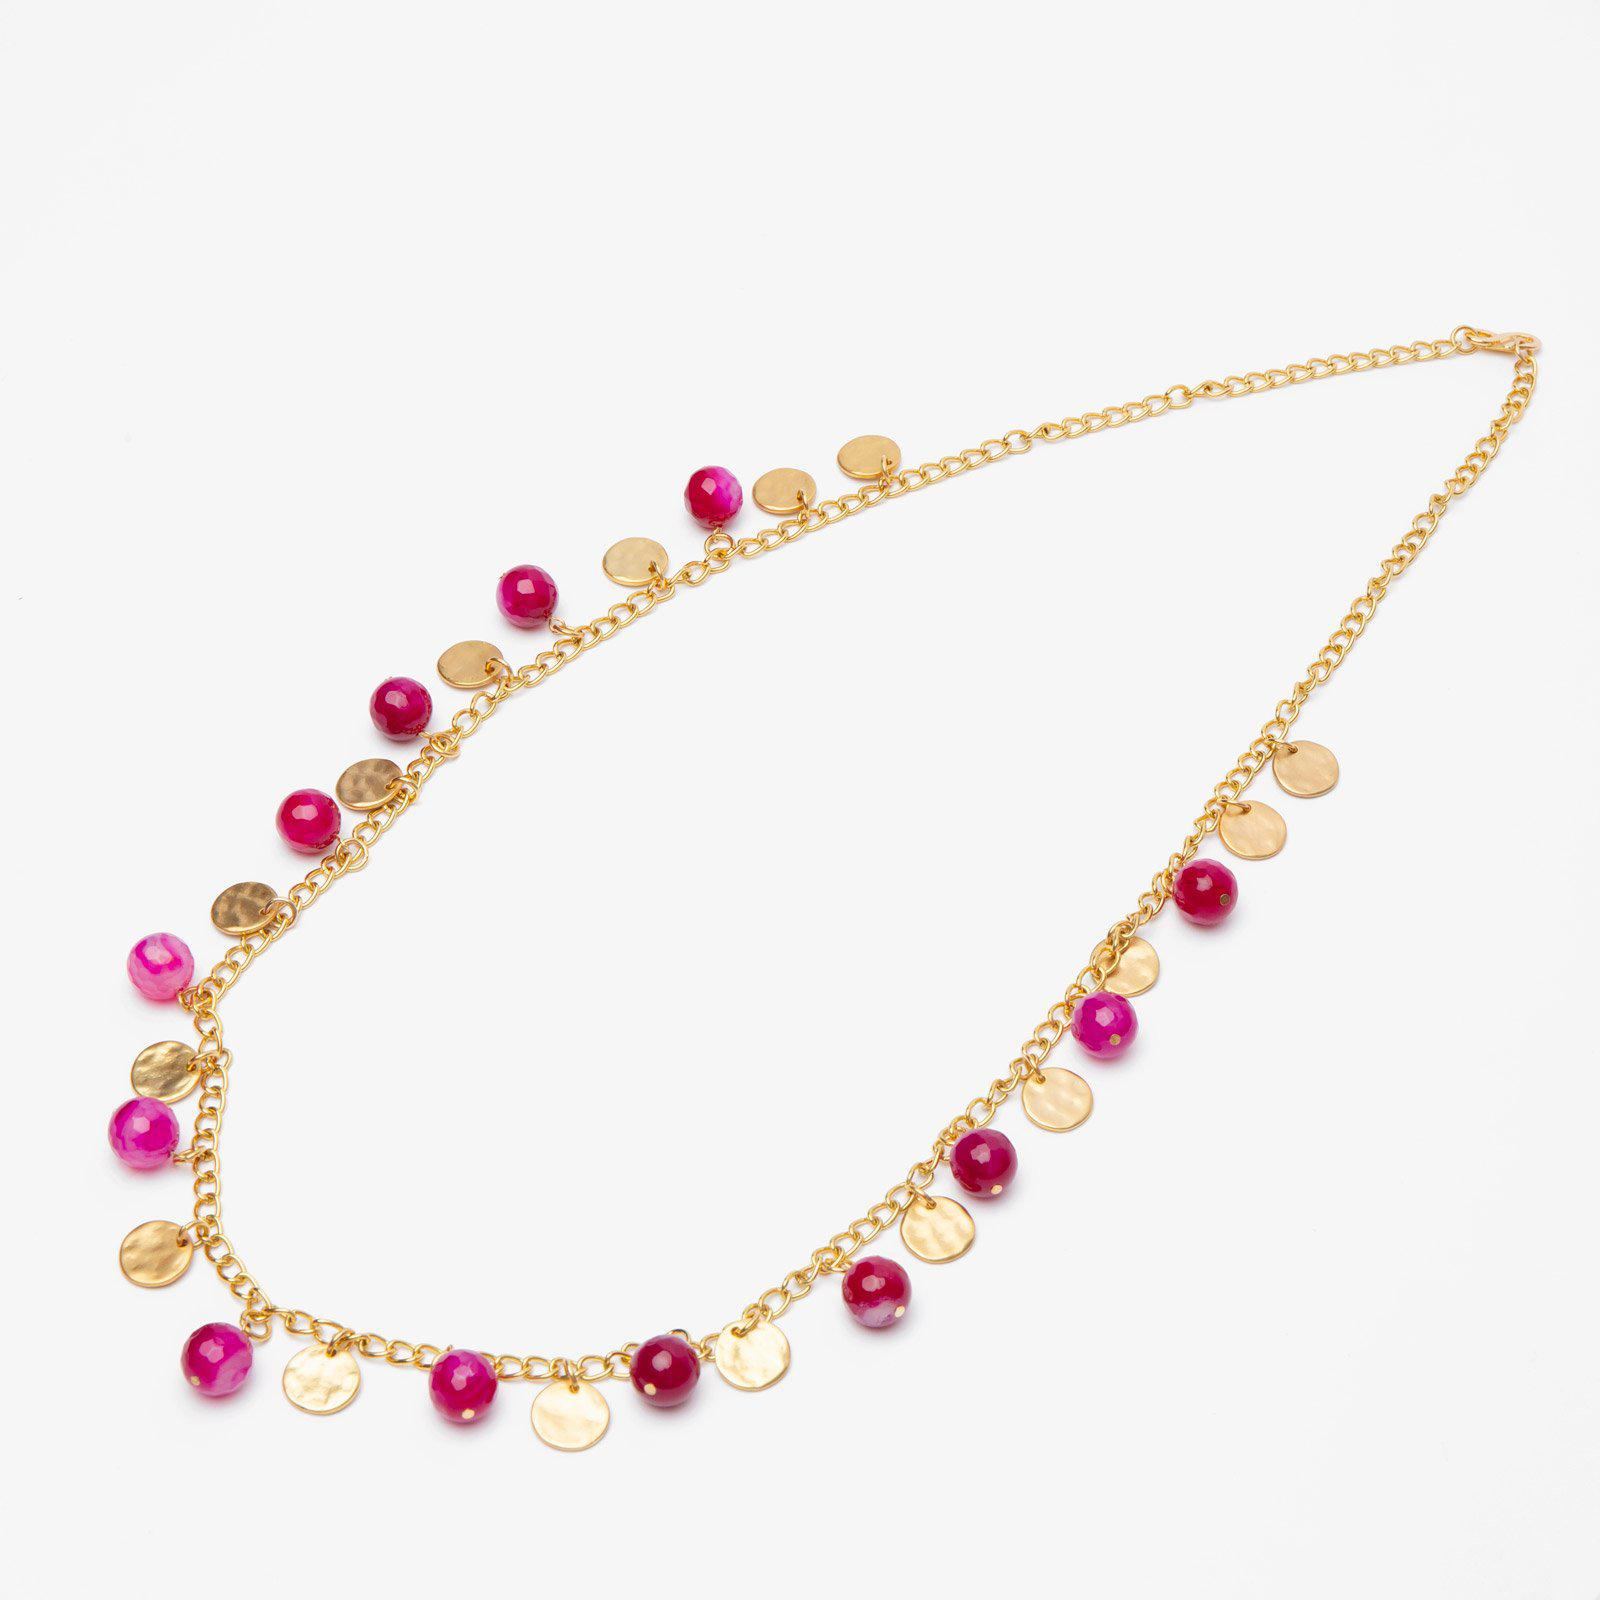 Cherry Agate Shilling Necklace